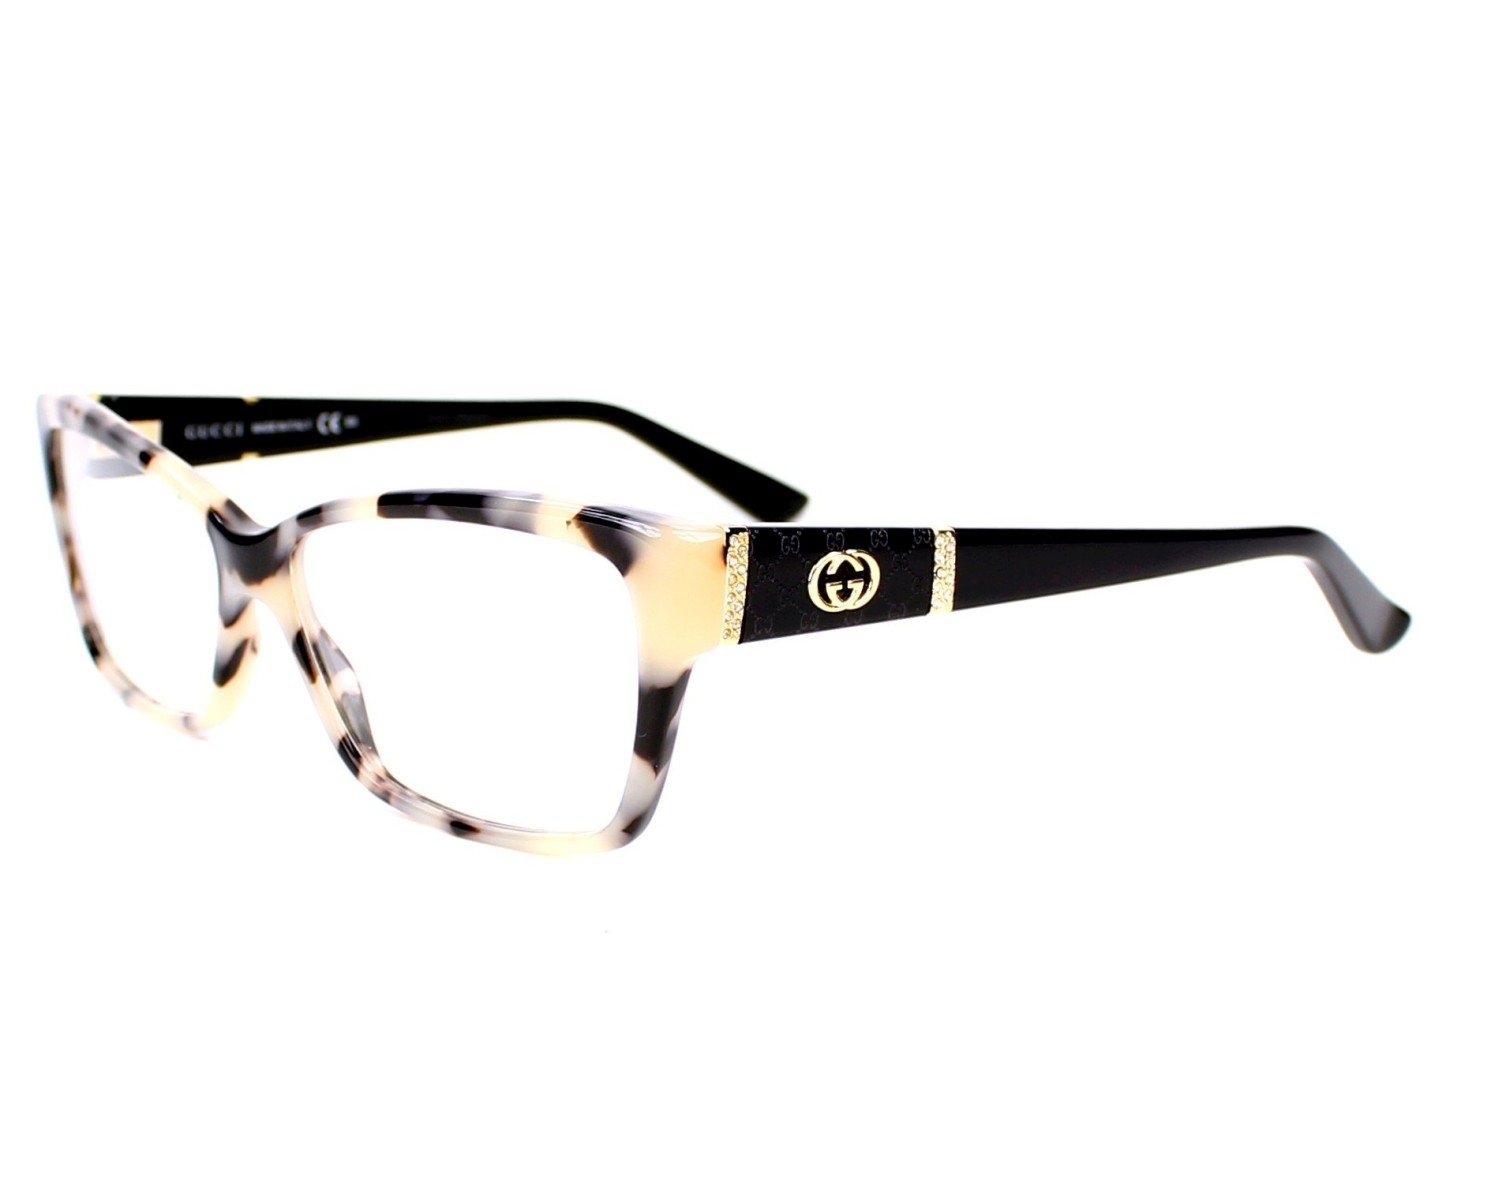 Gucci Eyeglass Frame 3559 : Order your Gucci eyeglasses GG 3559 MKJ 55 today